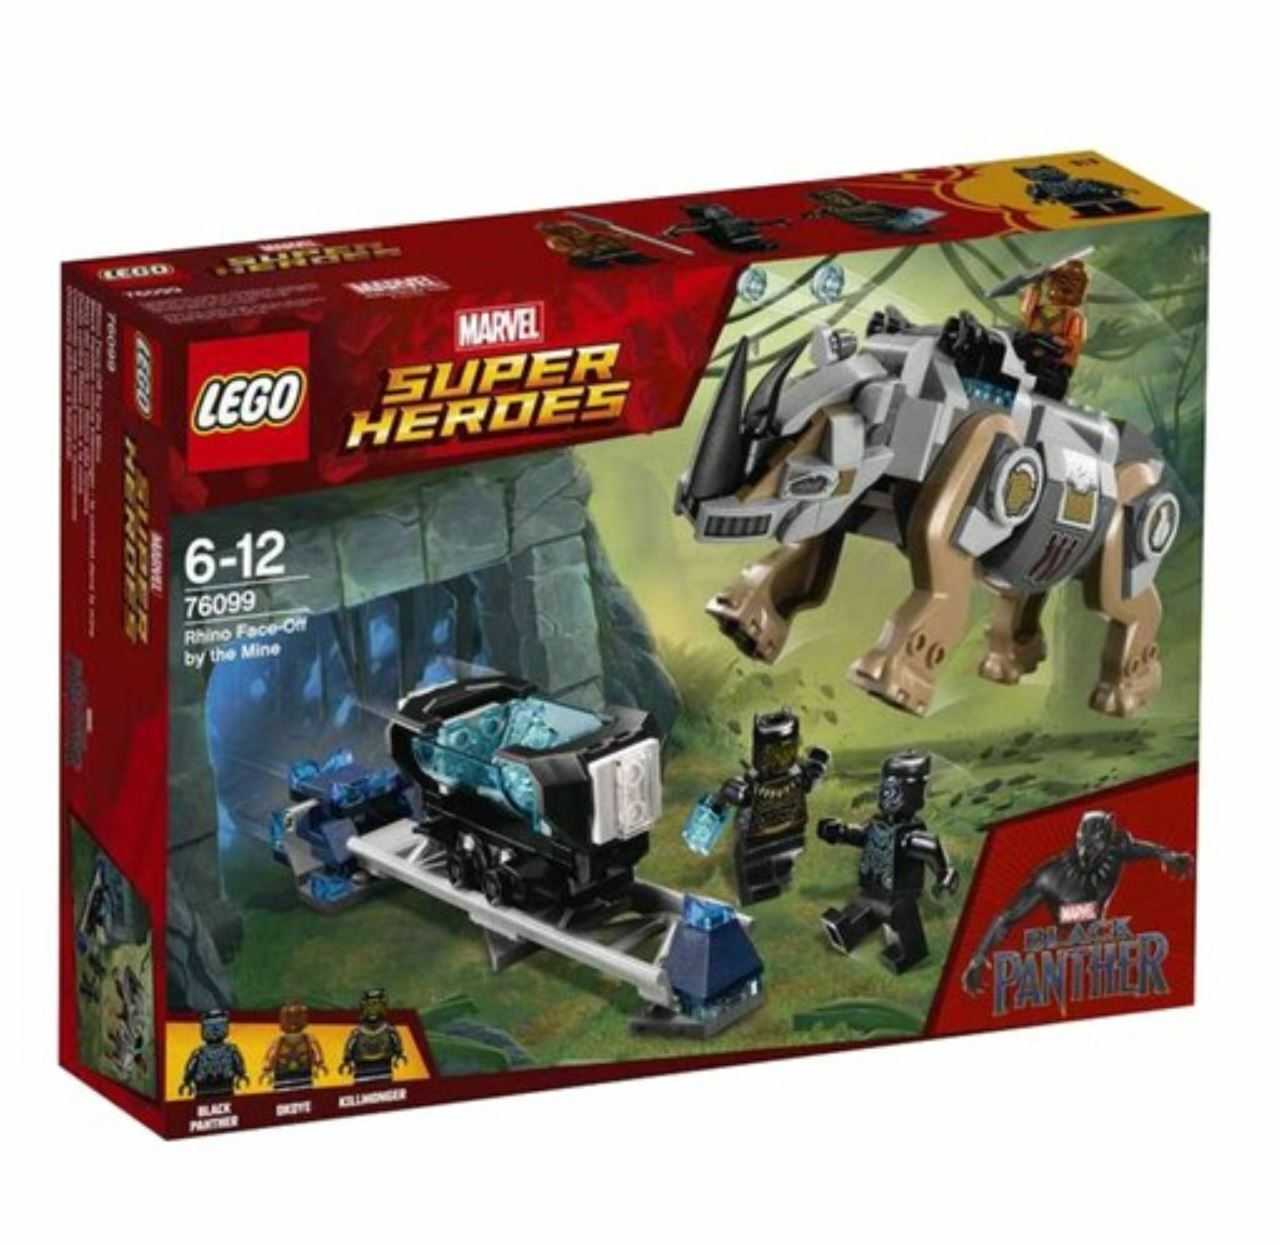 [LEGO] Rhino Face-Off by the Mine Mine Mine 76099 2018 Version Free Shipping 8ef176